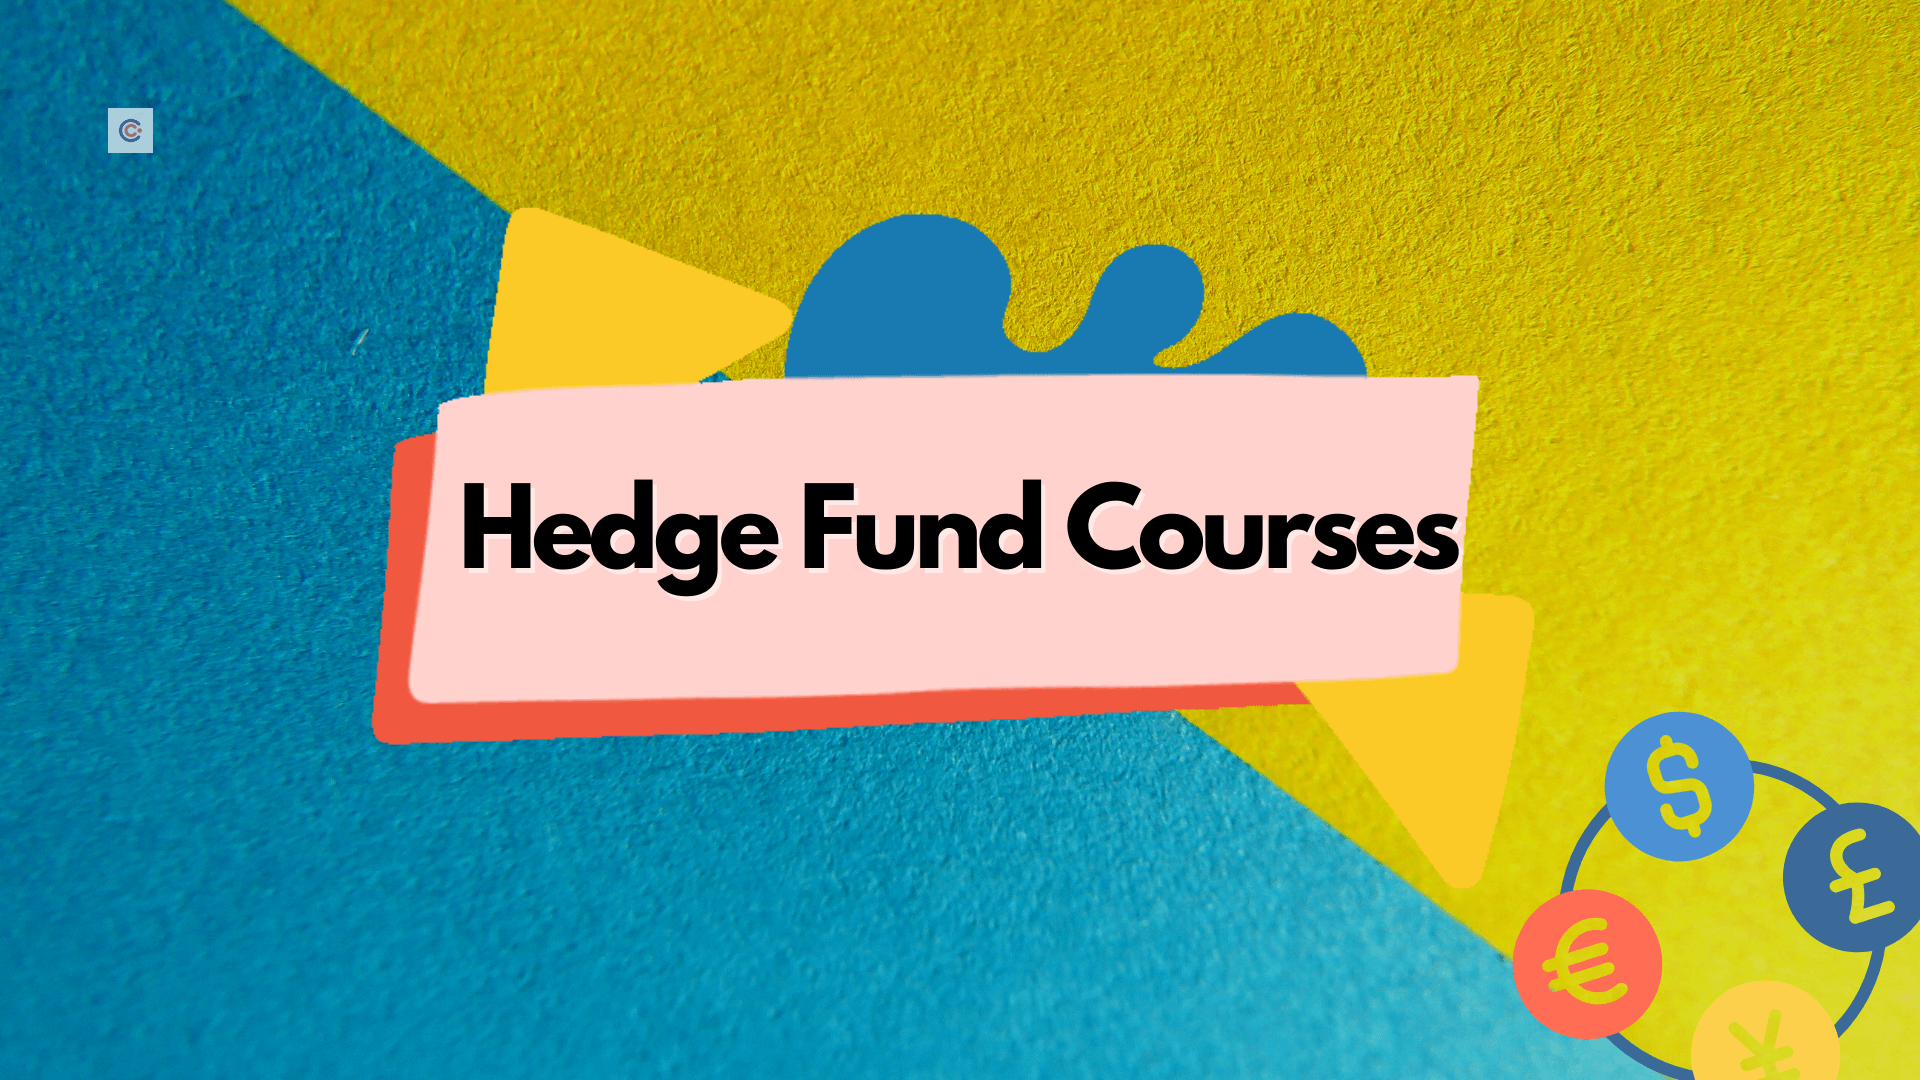 5 Best Hedge Fund Courses - Learn about Hedge Funding Online